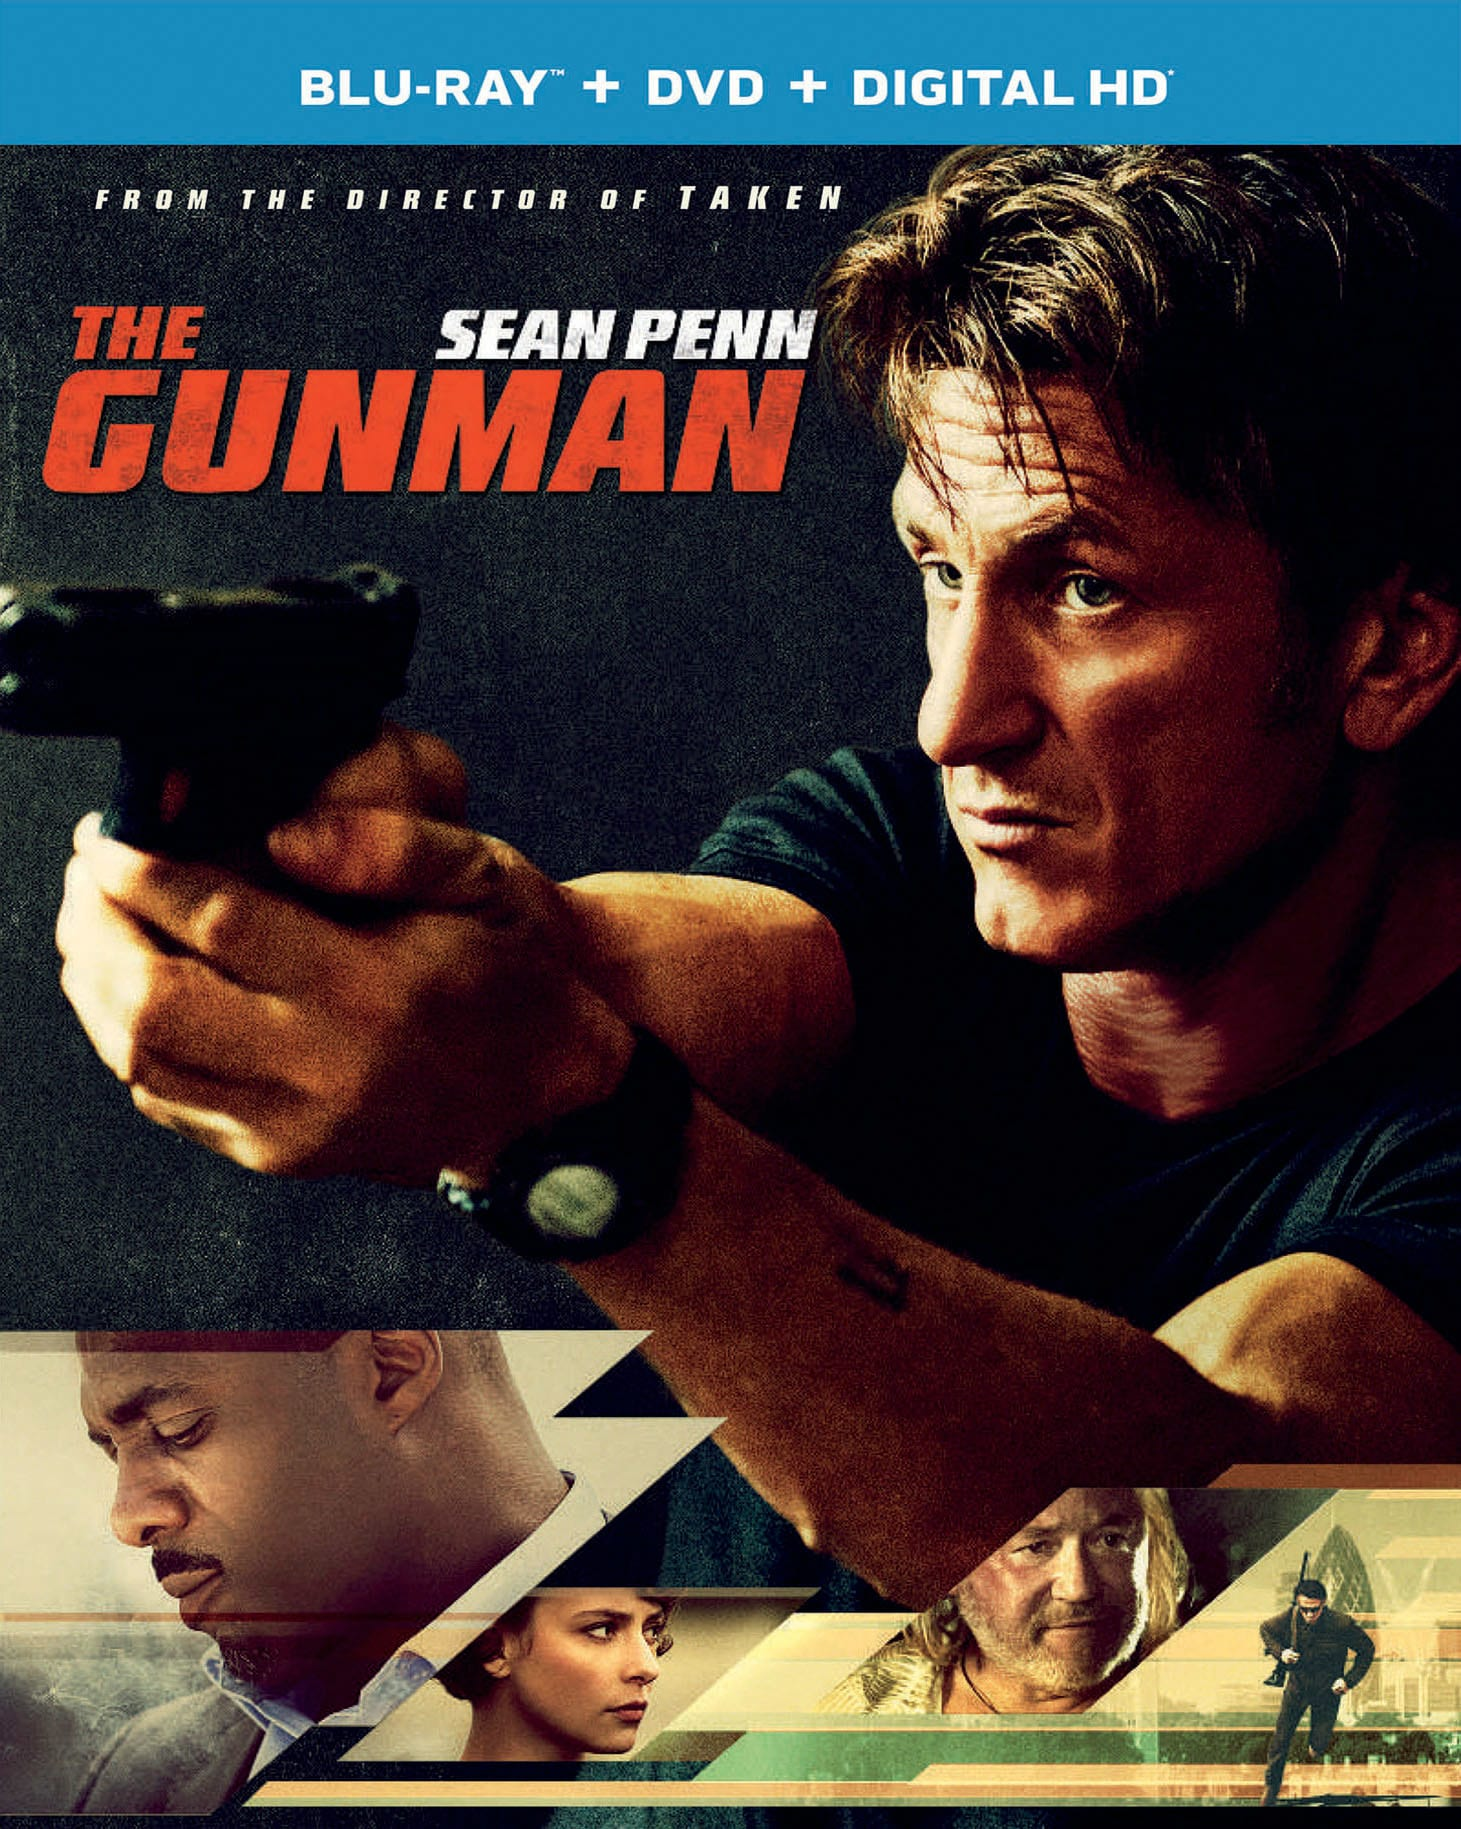 The Gunman (DVD + Digital) [Blu-ray]